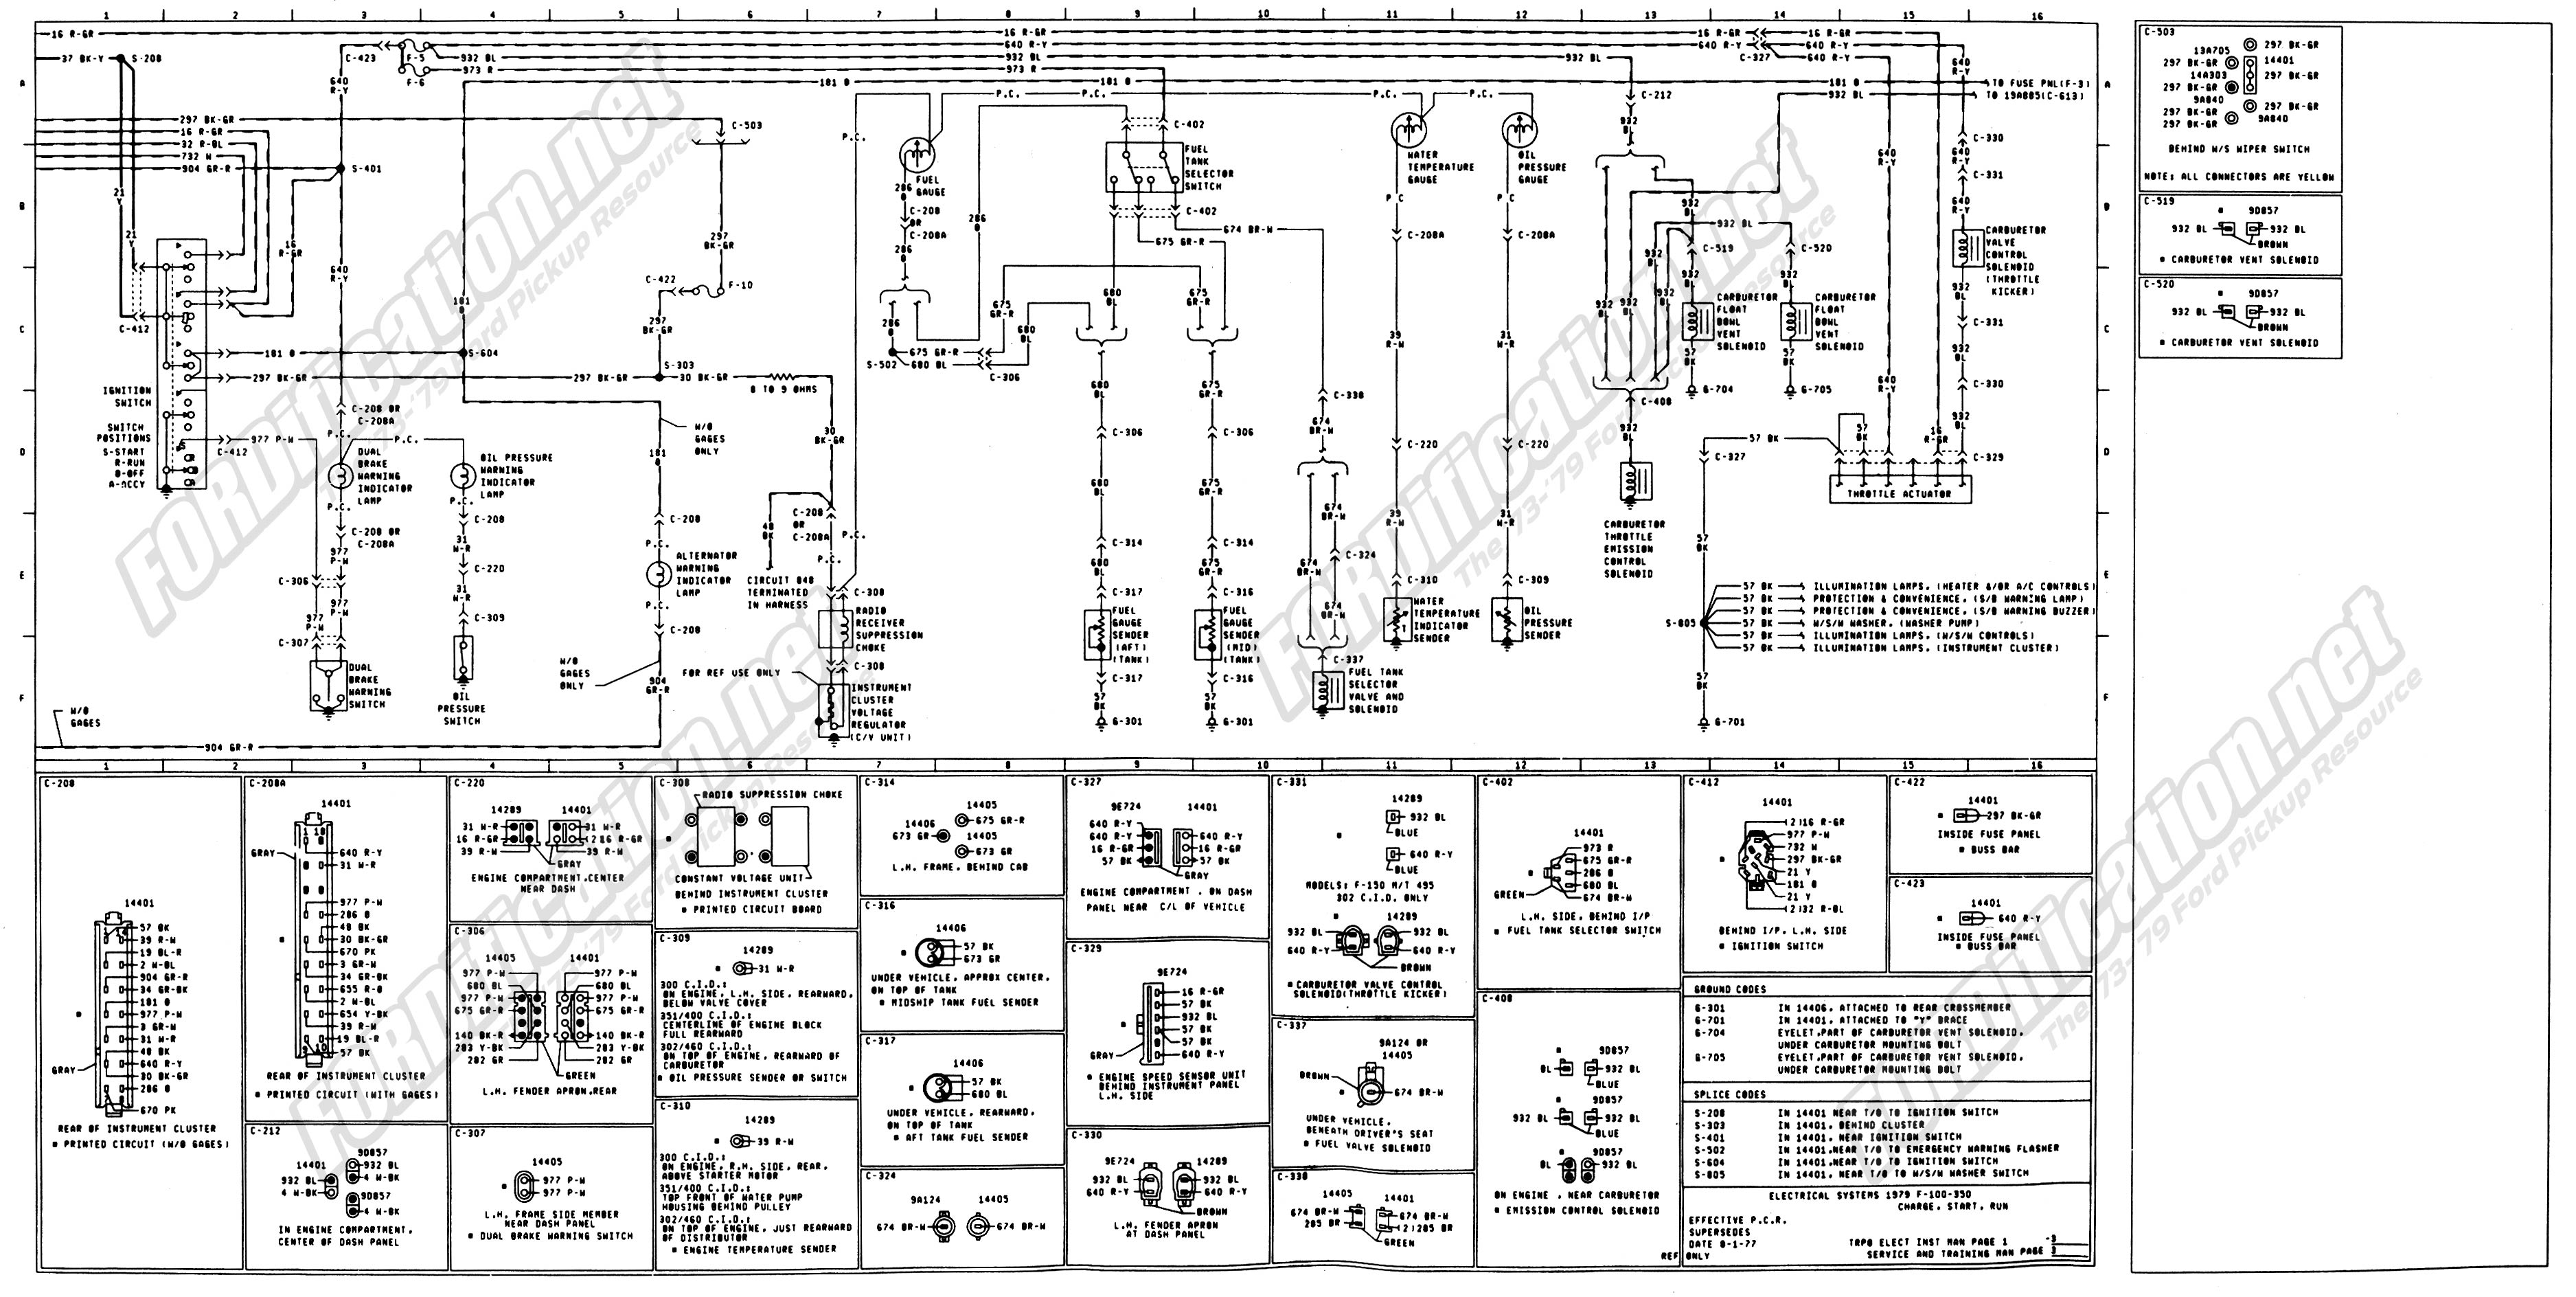 1973 1979 ford truck wiring diagrams schematics fordification net rh fordification net Ford Ignition System Wiring Diagram Ford Electrical Wiring Diagrams